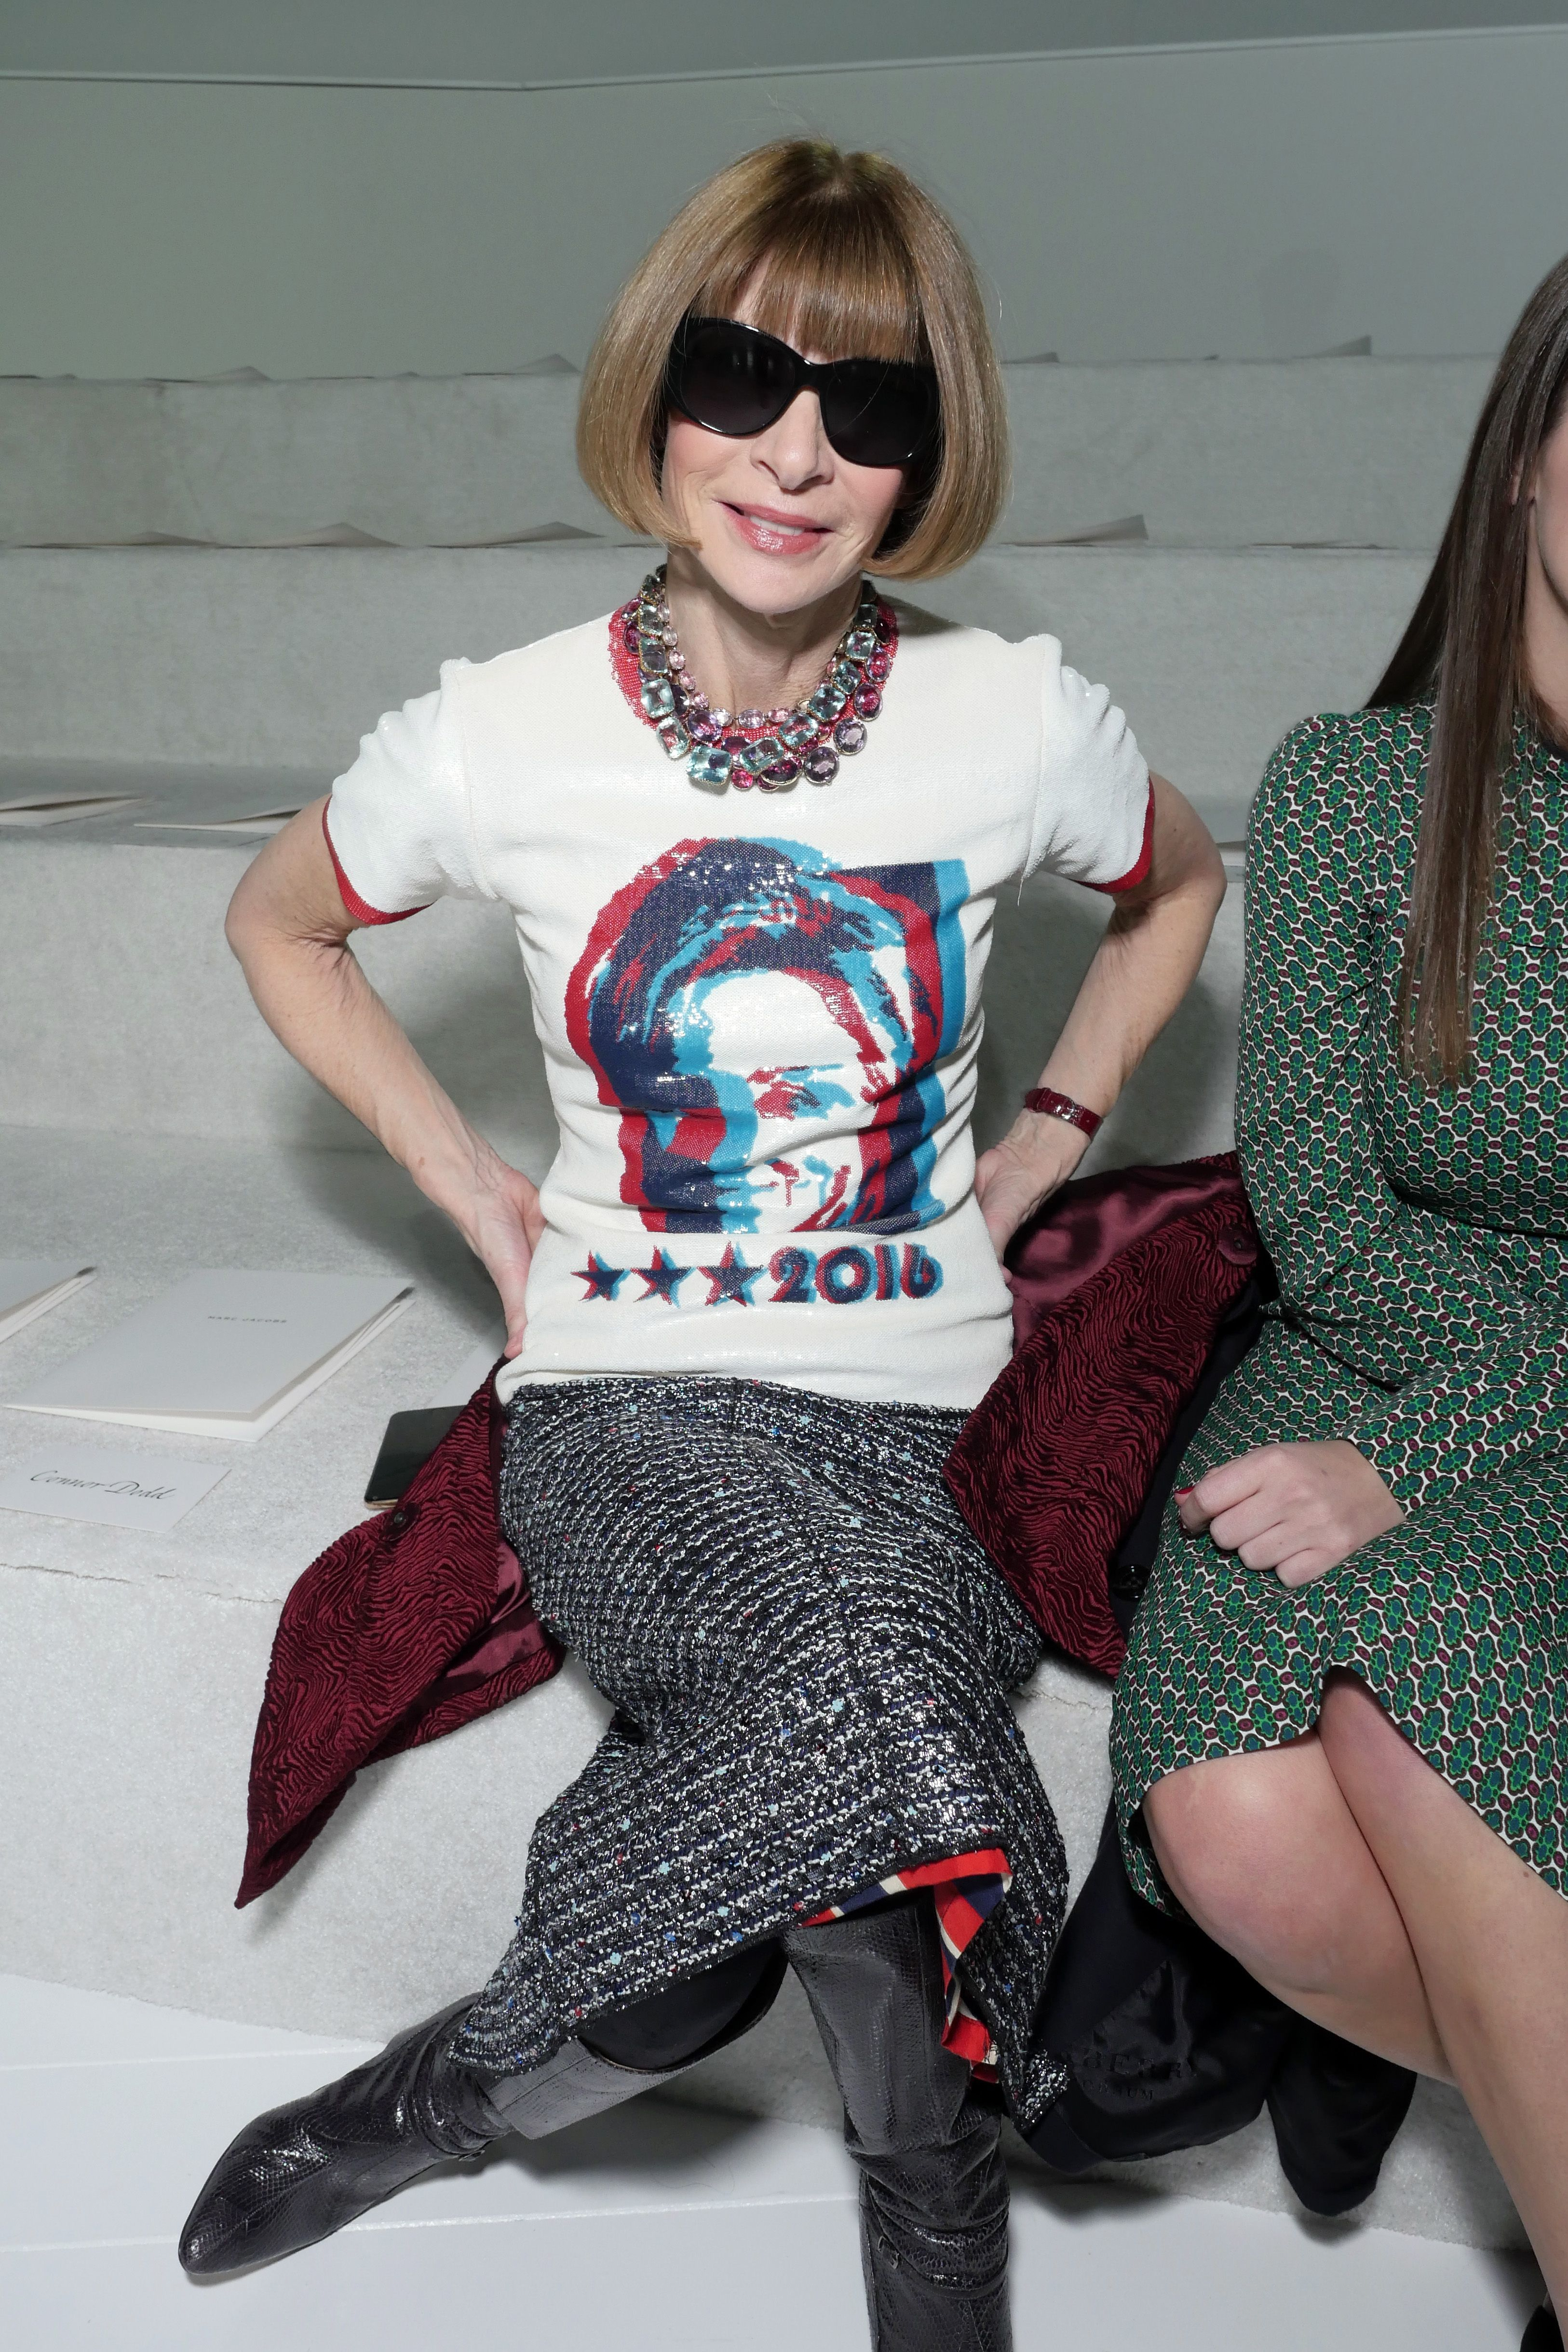 Anna Wintour reveals the reason for those bangs